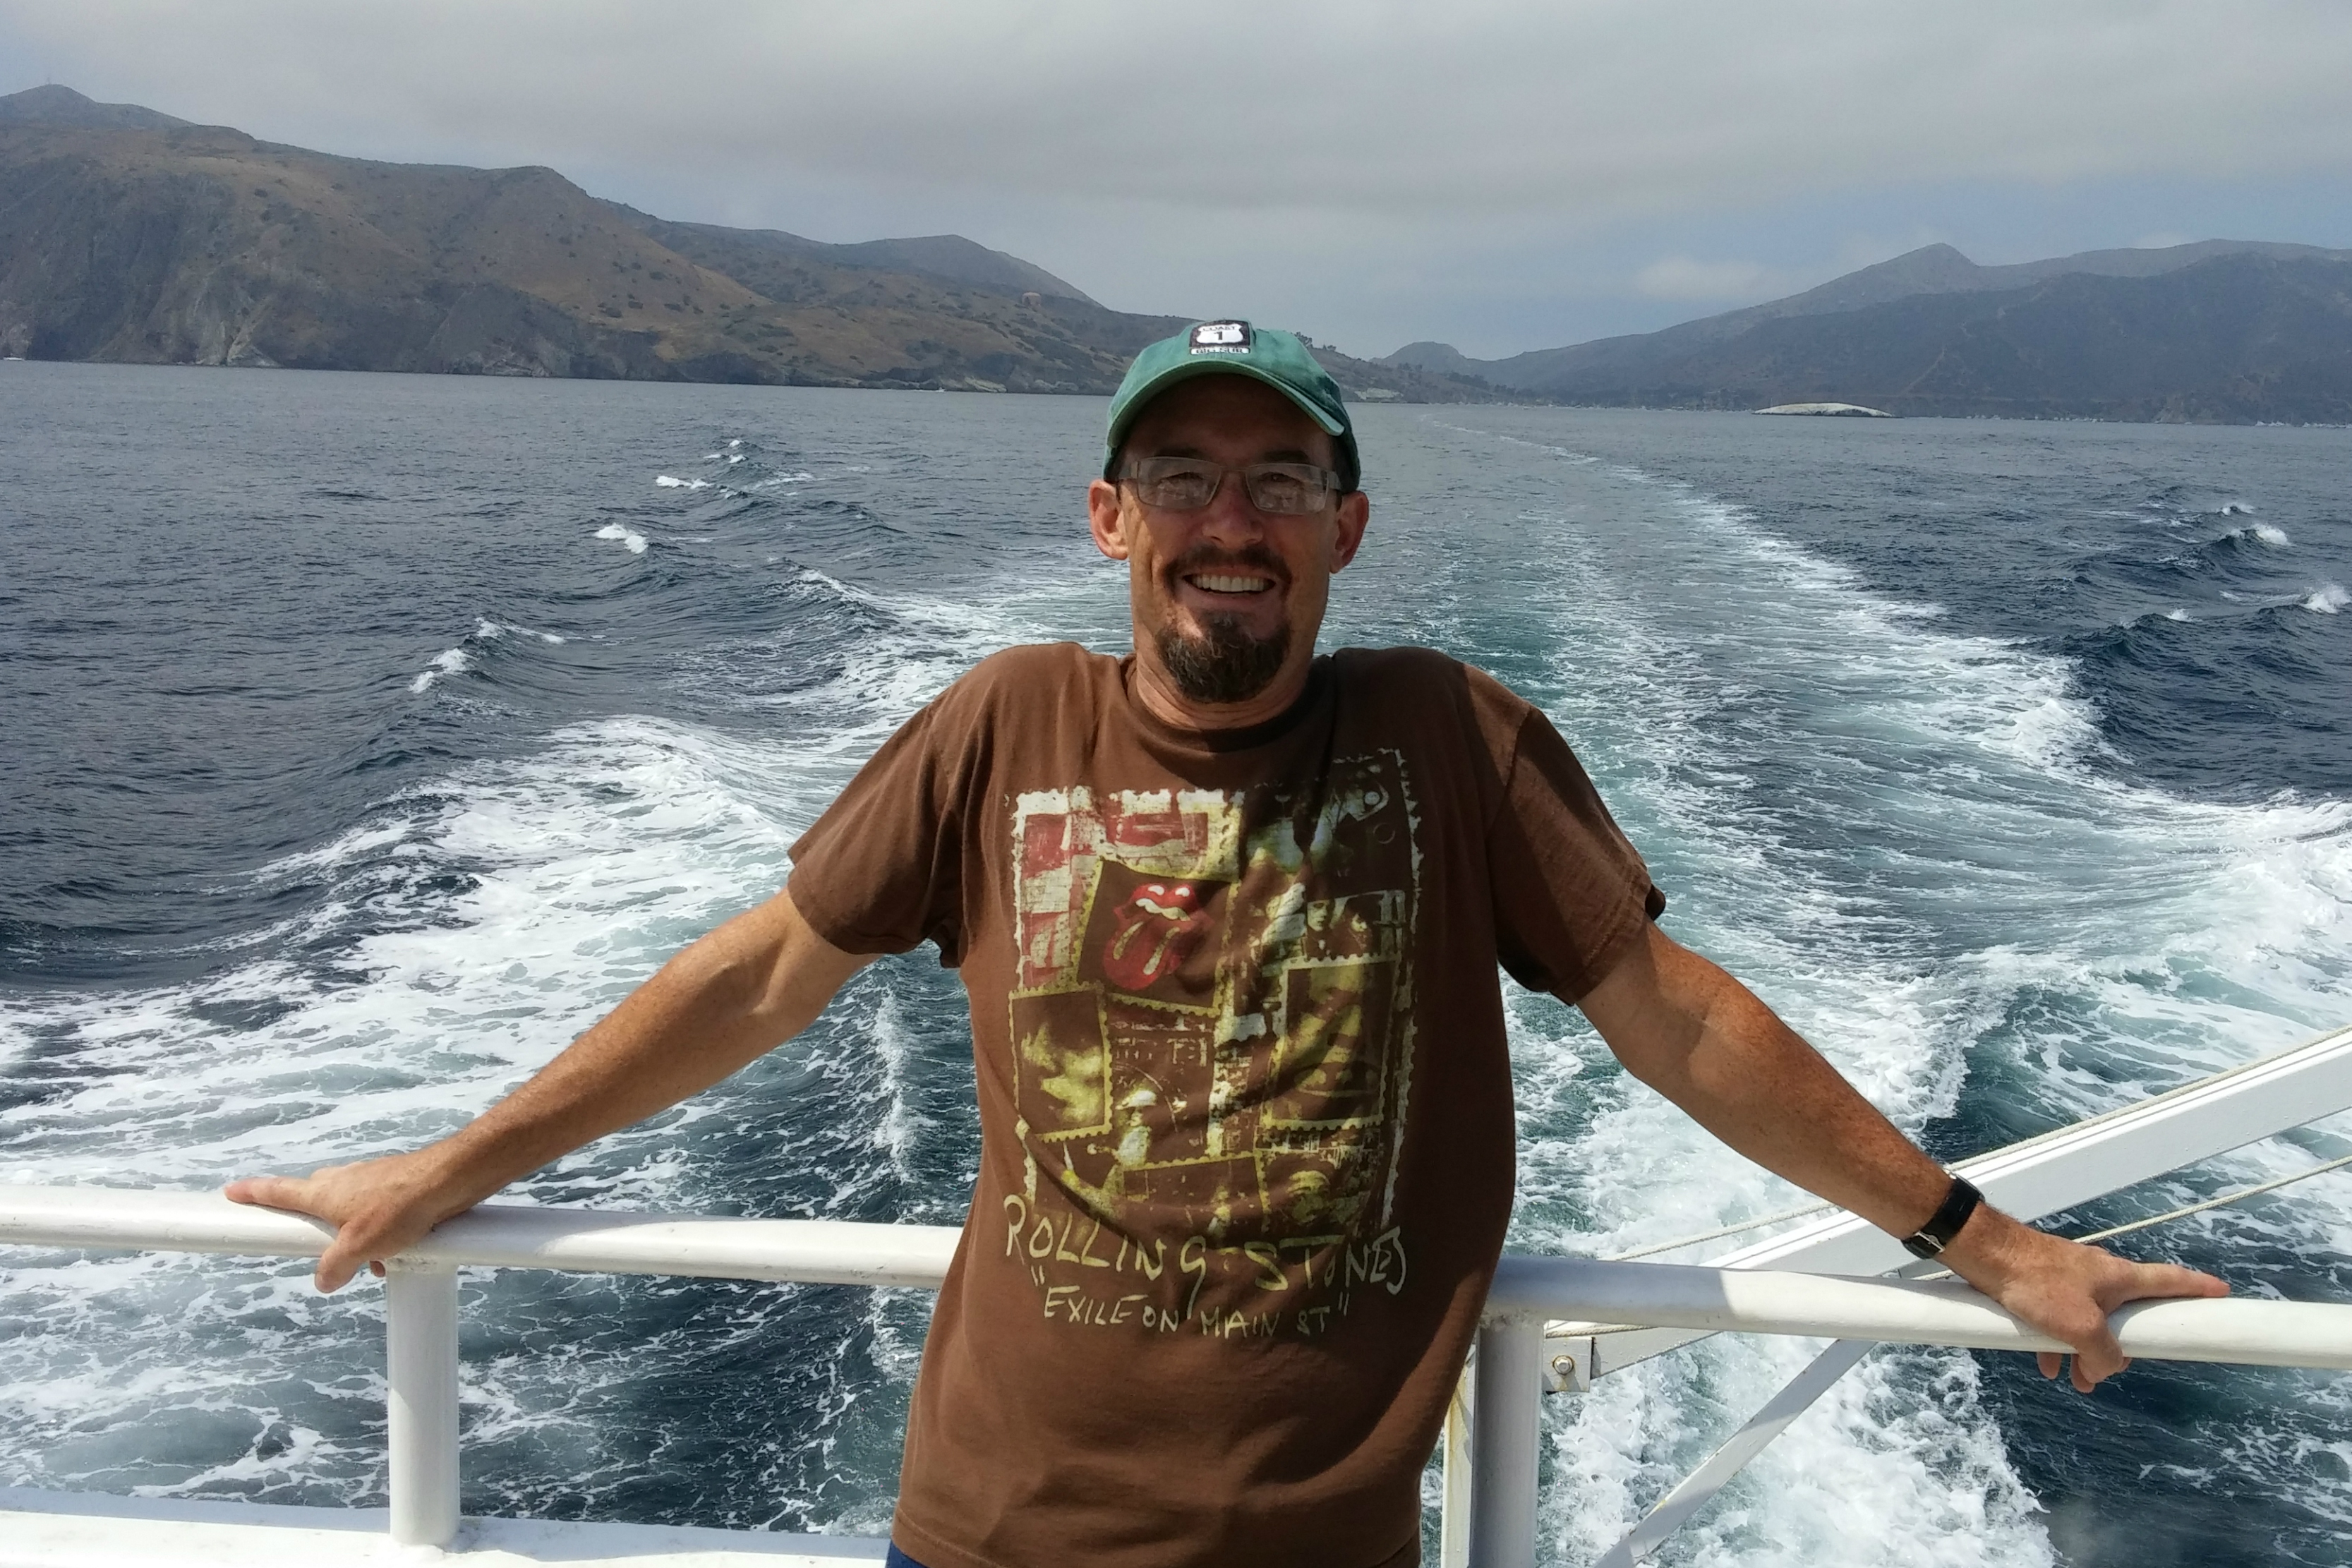 Mr. Smith on the boat to Catalina